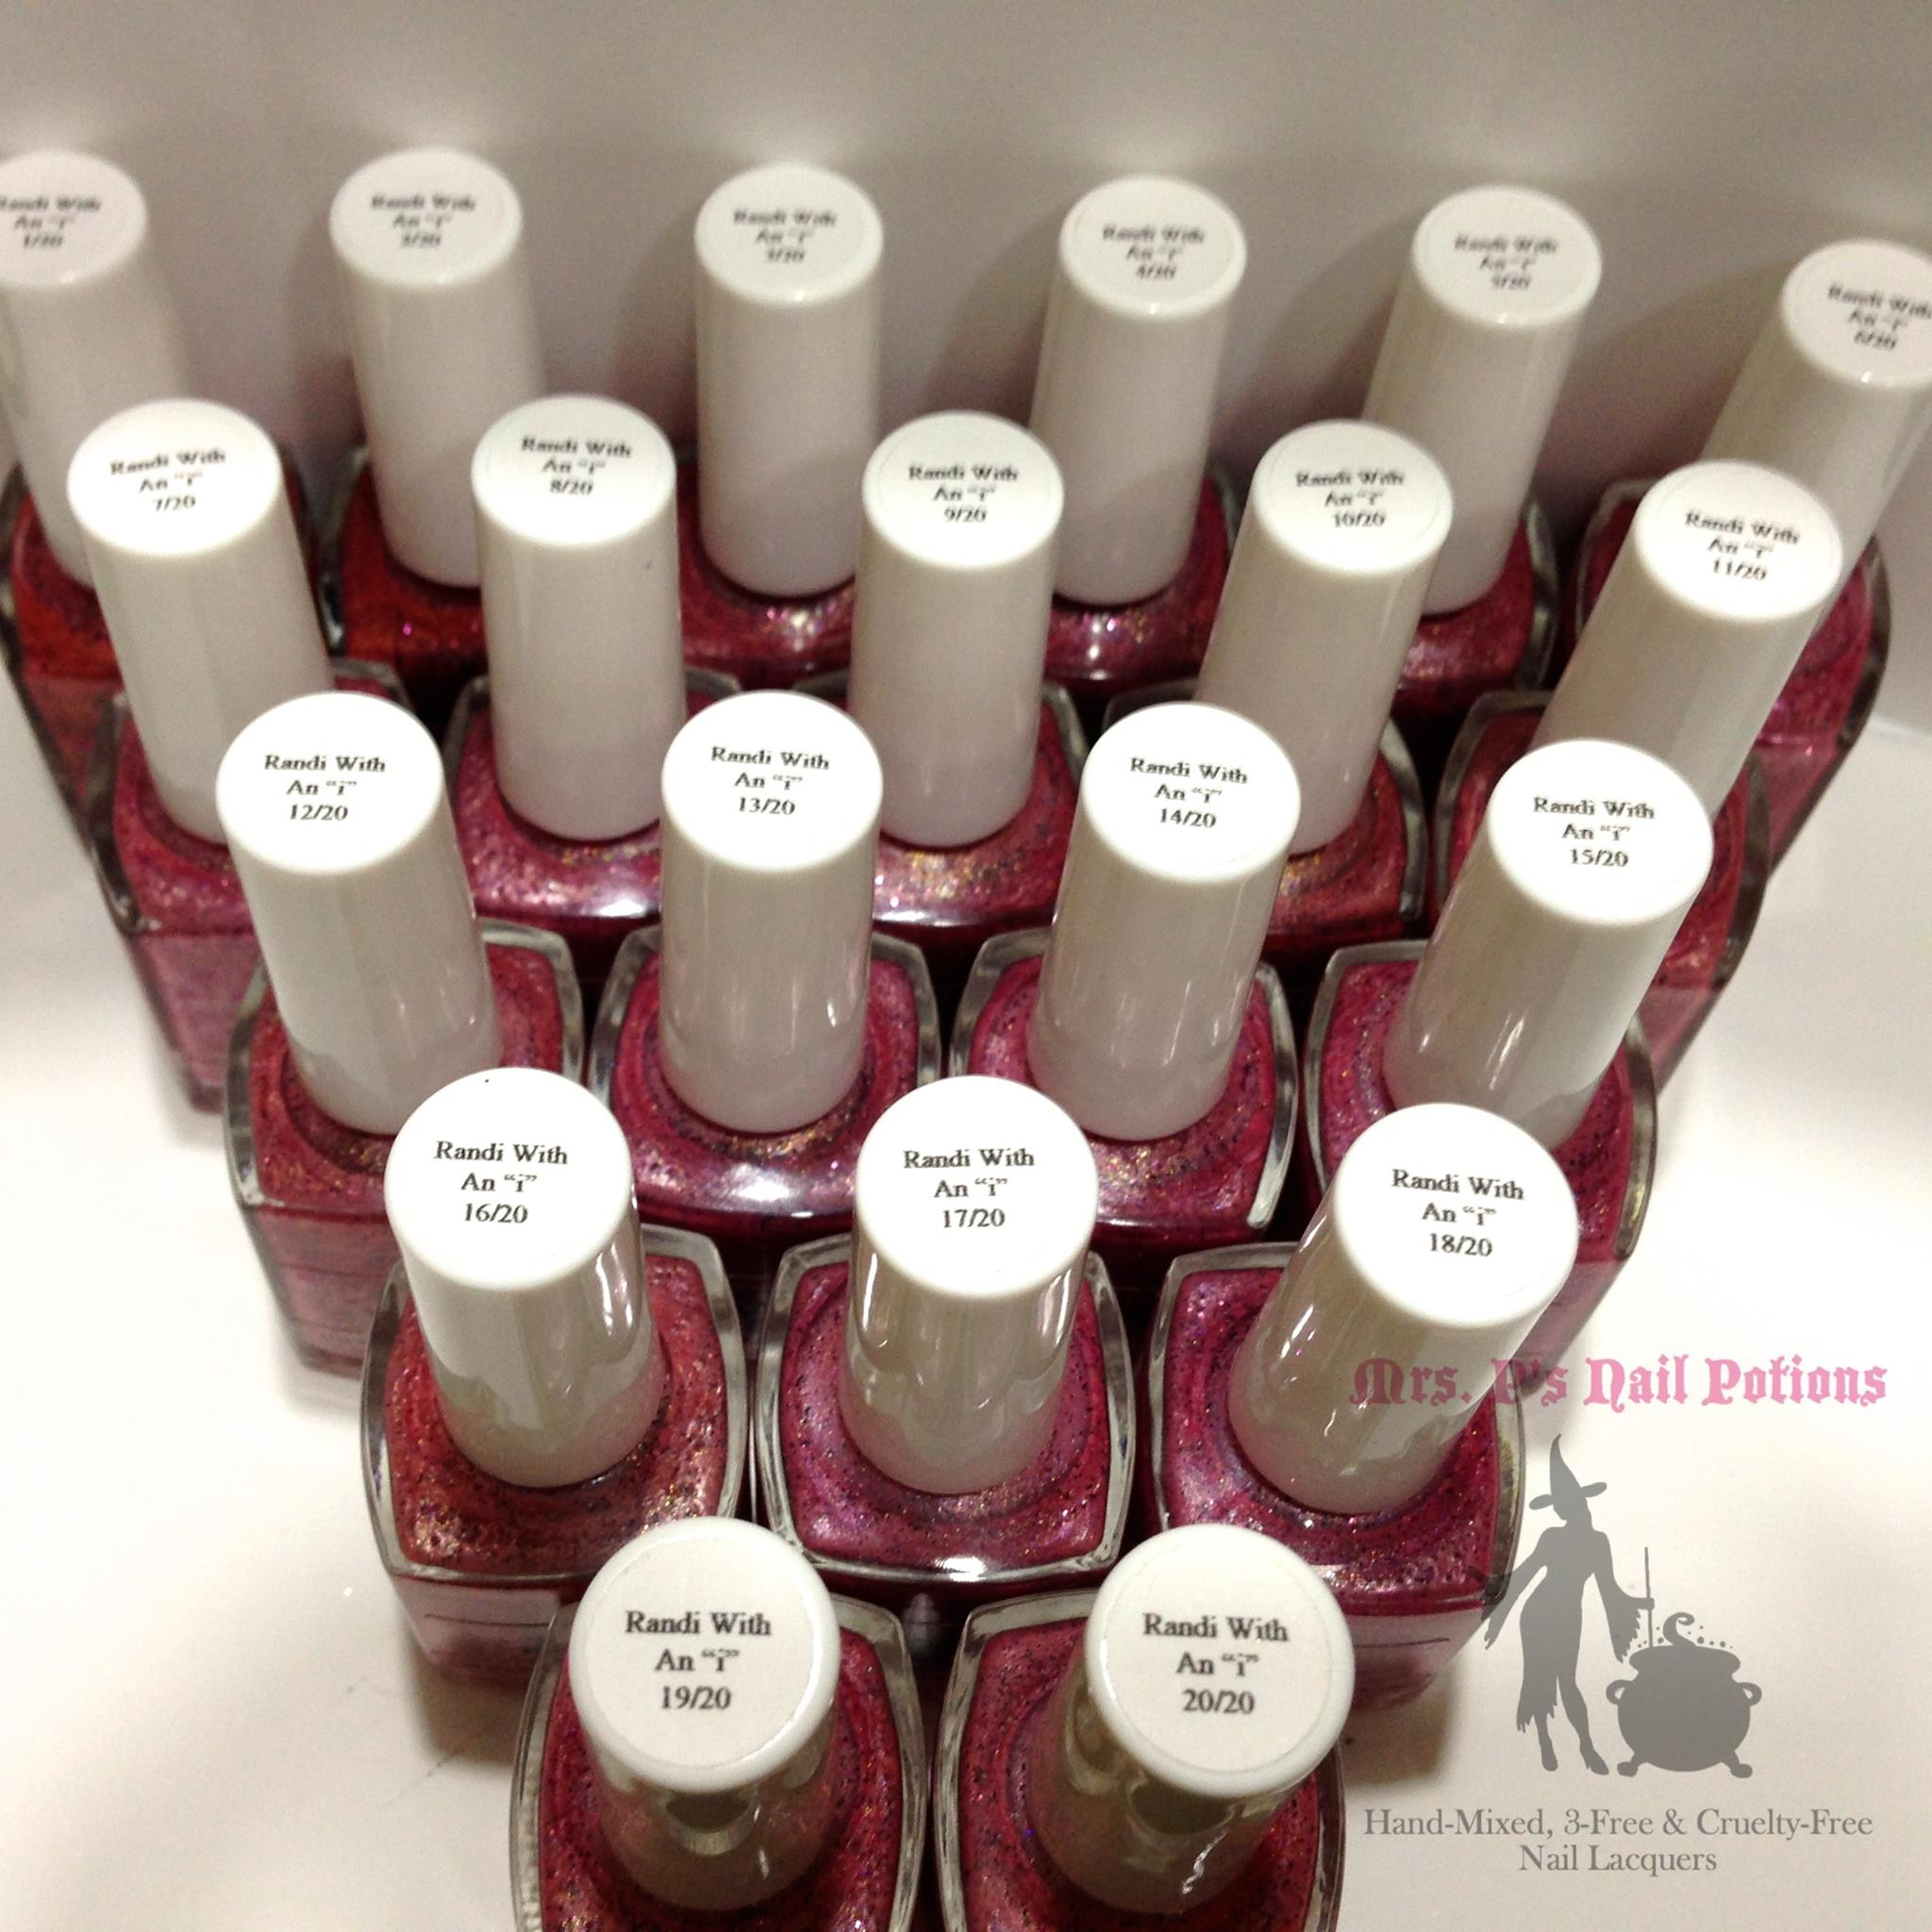 Photo by Bree Penfold#12  Mrs. P's Nails & Nail Potions.jpg